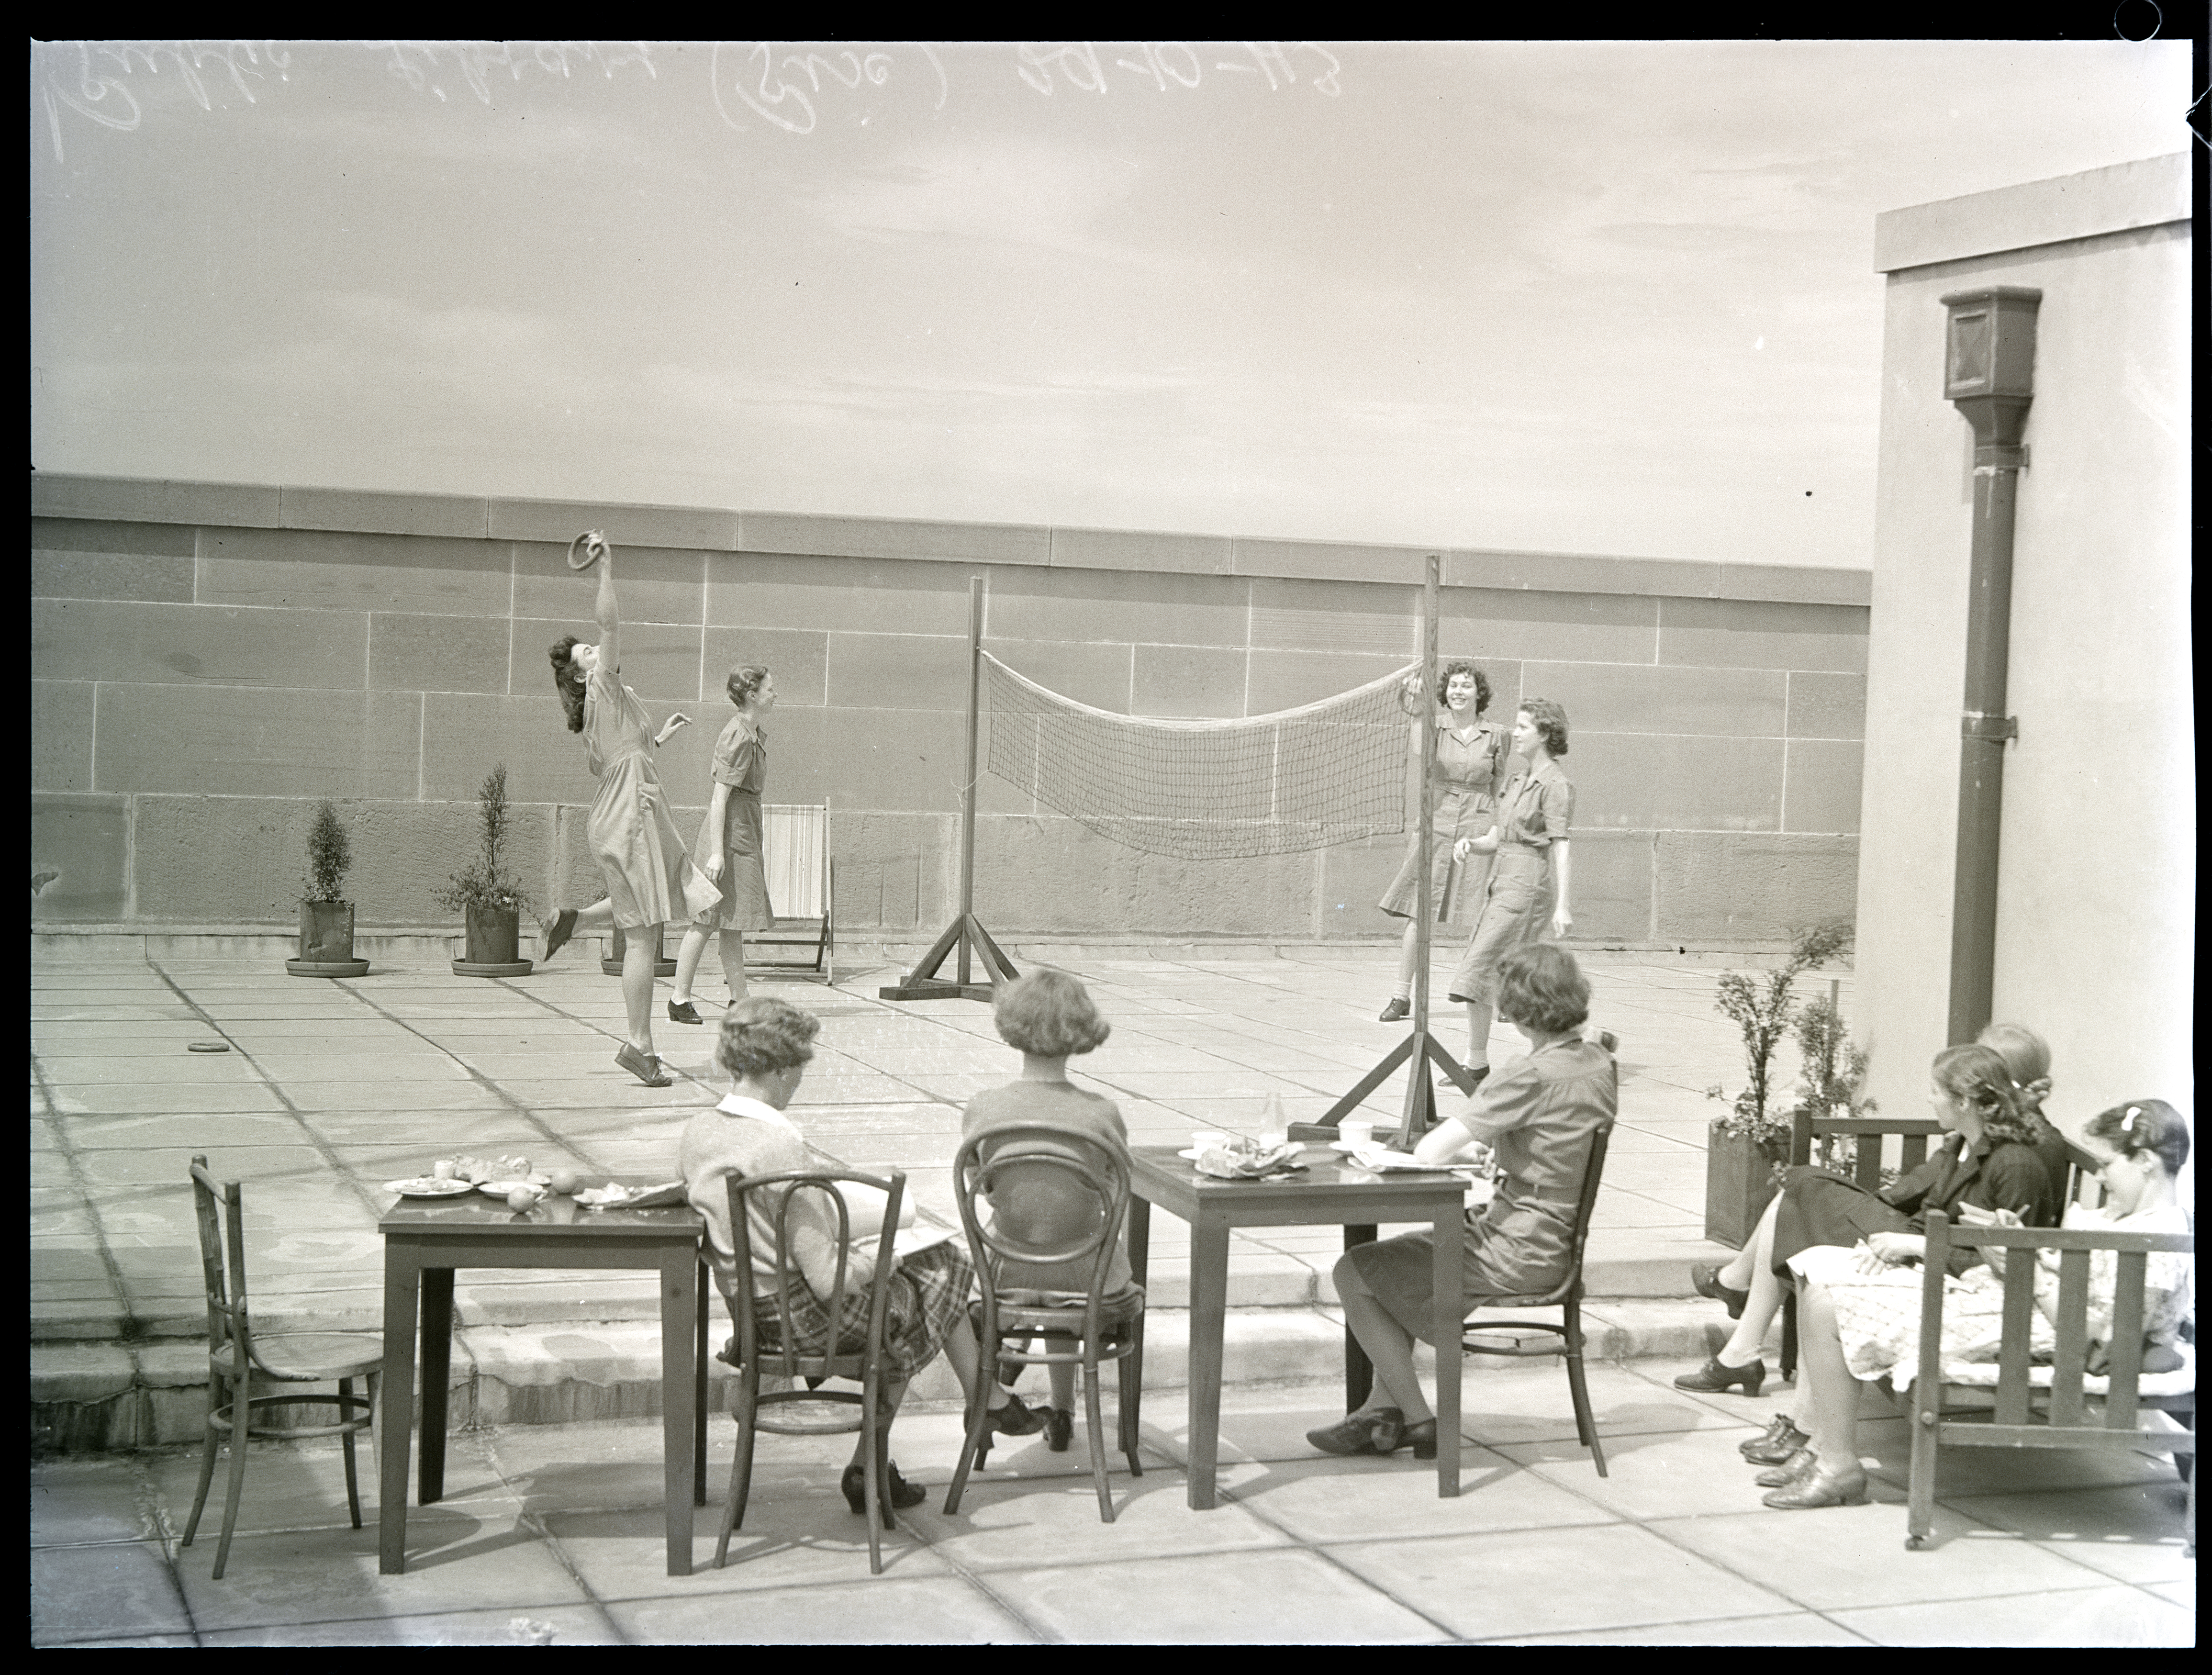 Staff on the Roof, Mitchell Building, 29.10.1943, photograph by Ivan Ives